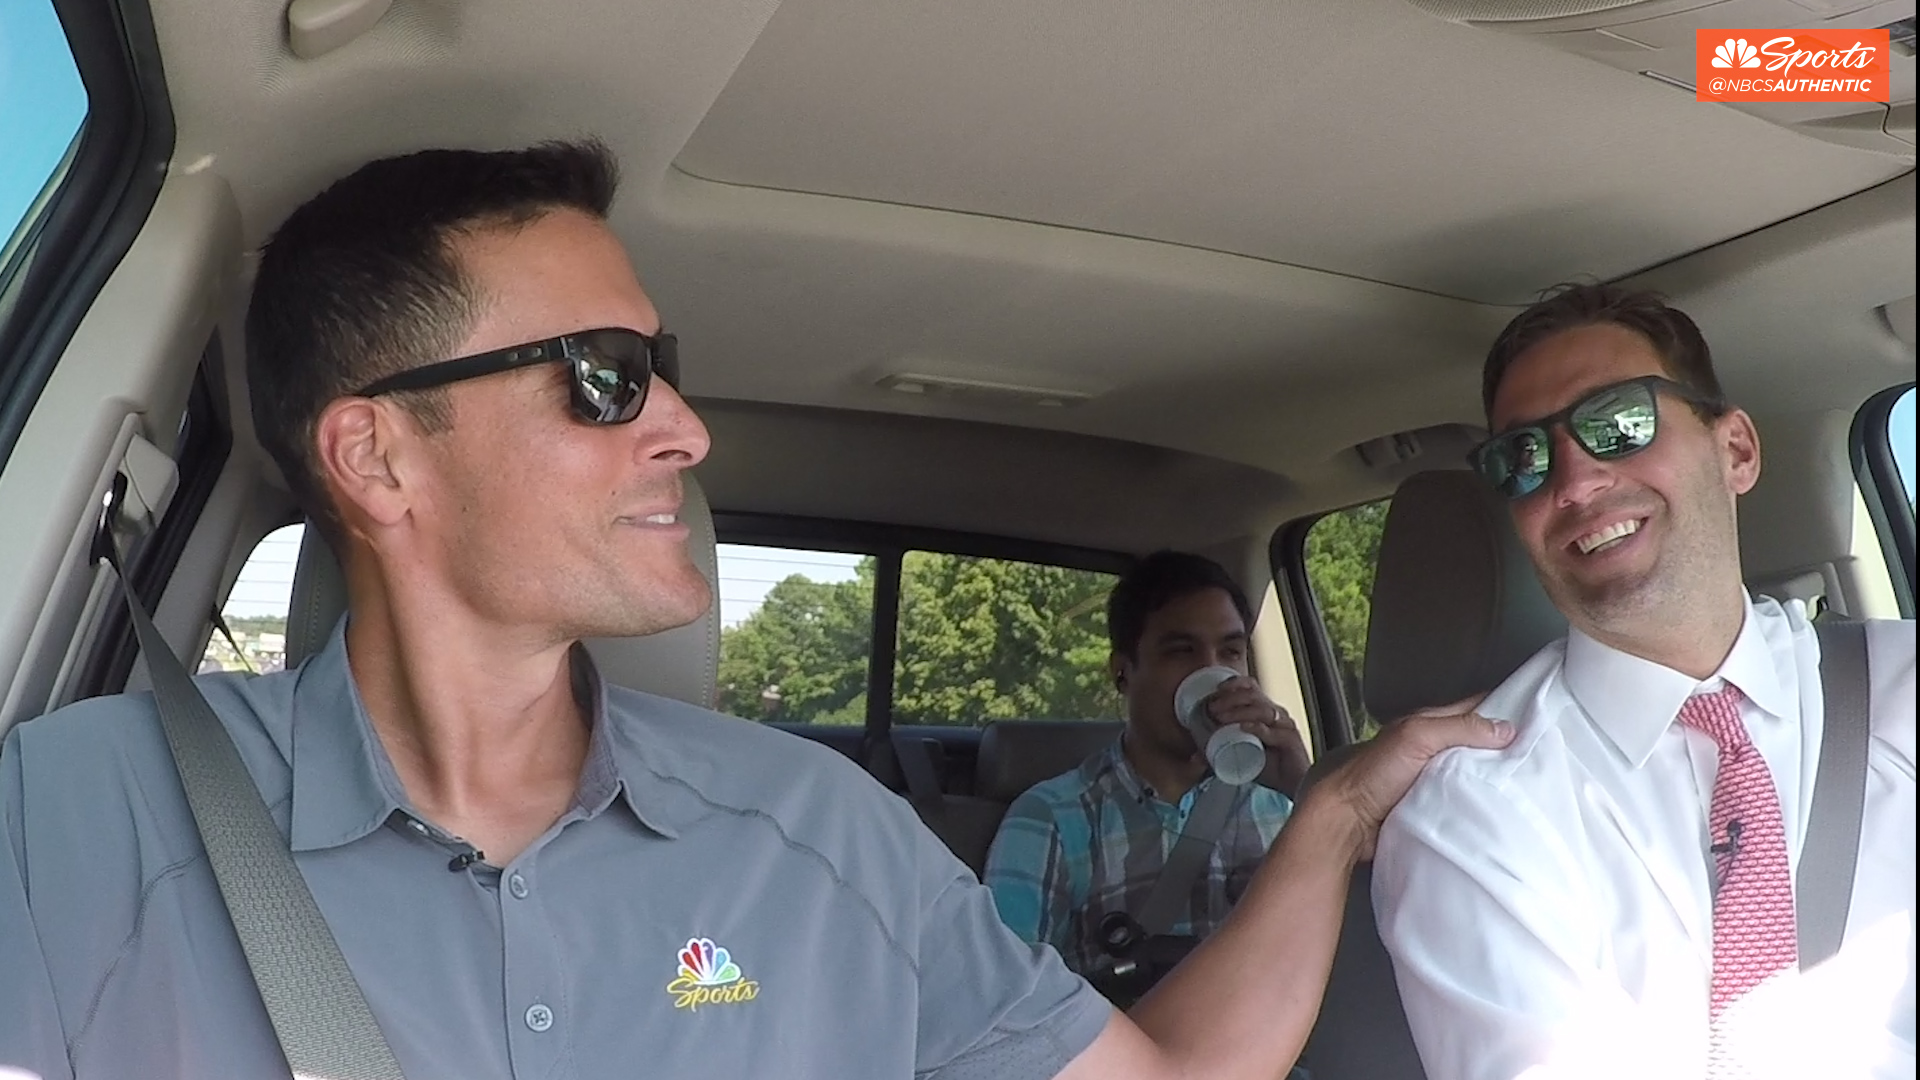 Carpool to the Park with Javier Lopez and Jeff Francoeur